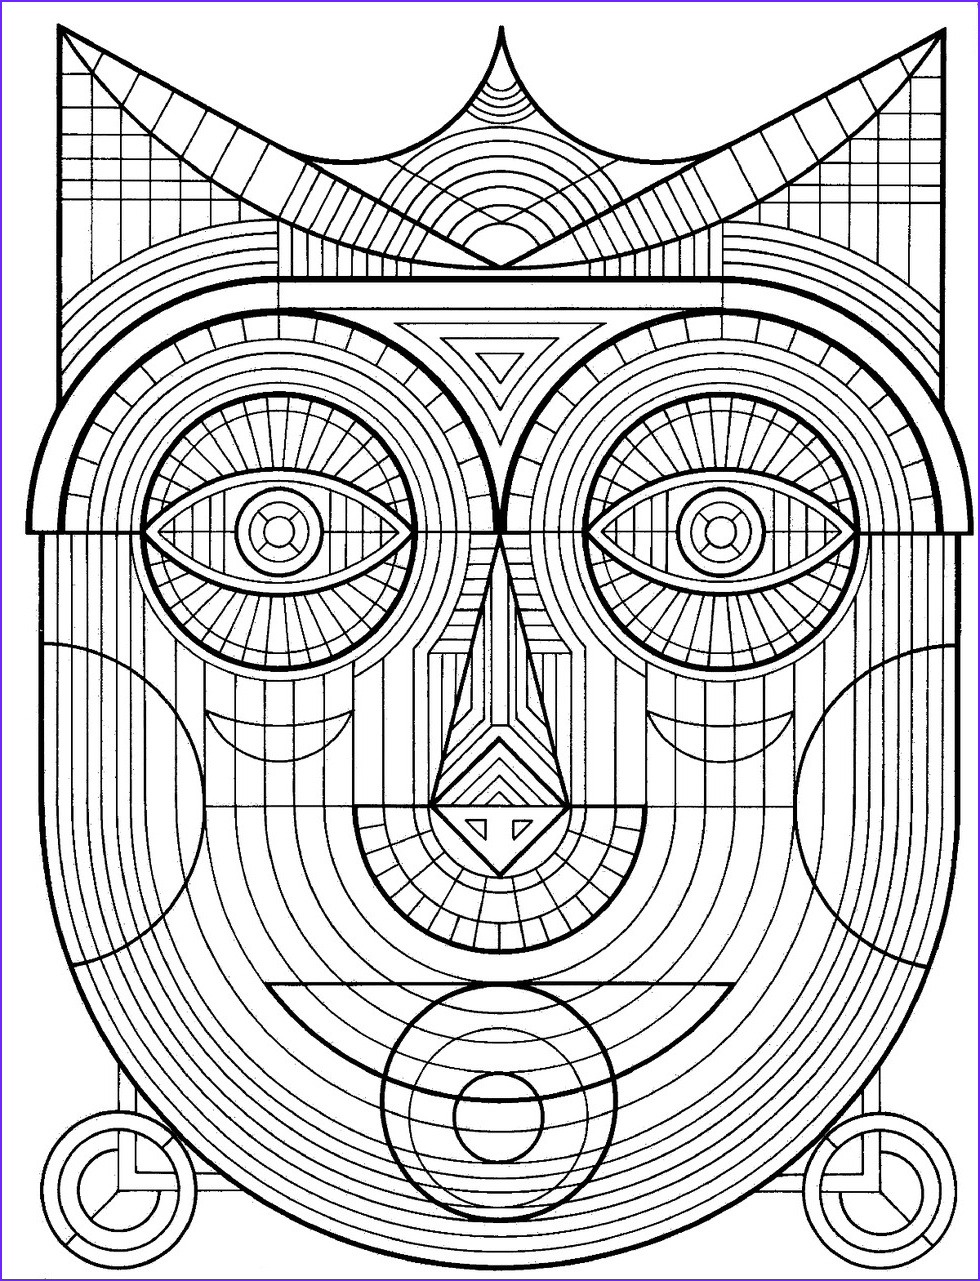 Coloring Stress Best Of Images these Printable Mandala and Abstract Coloring Pages